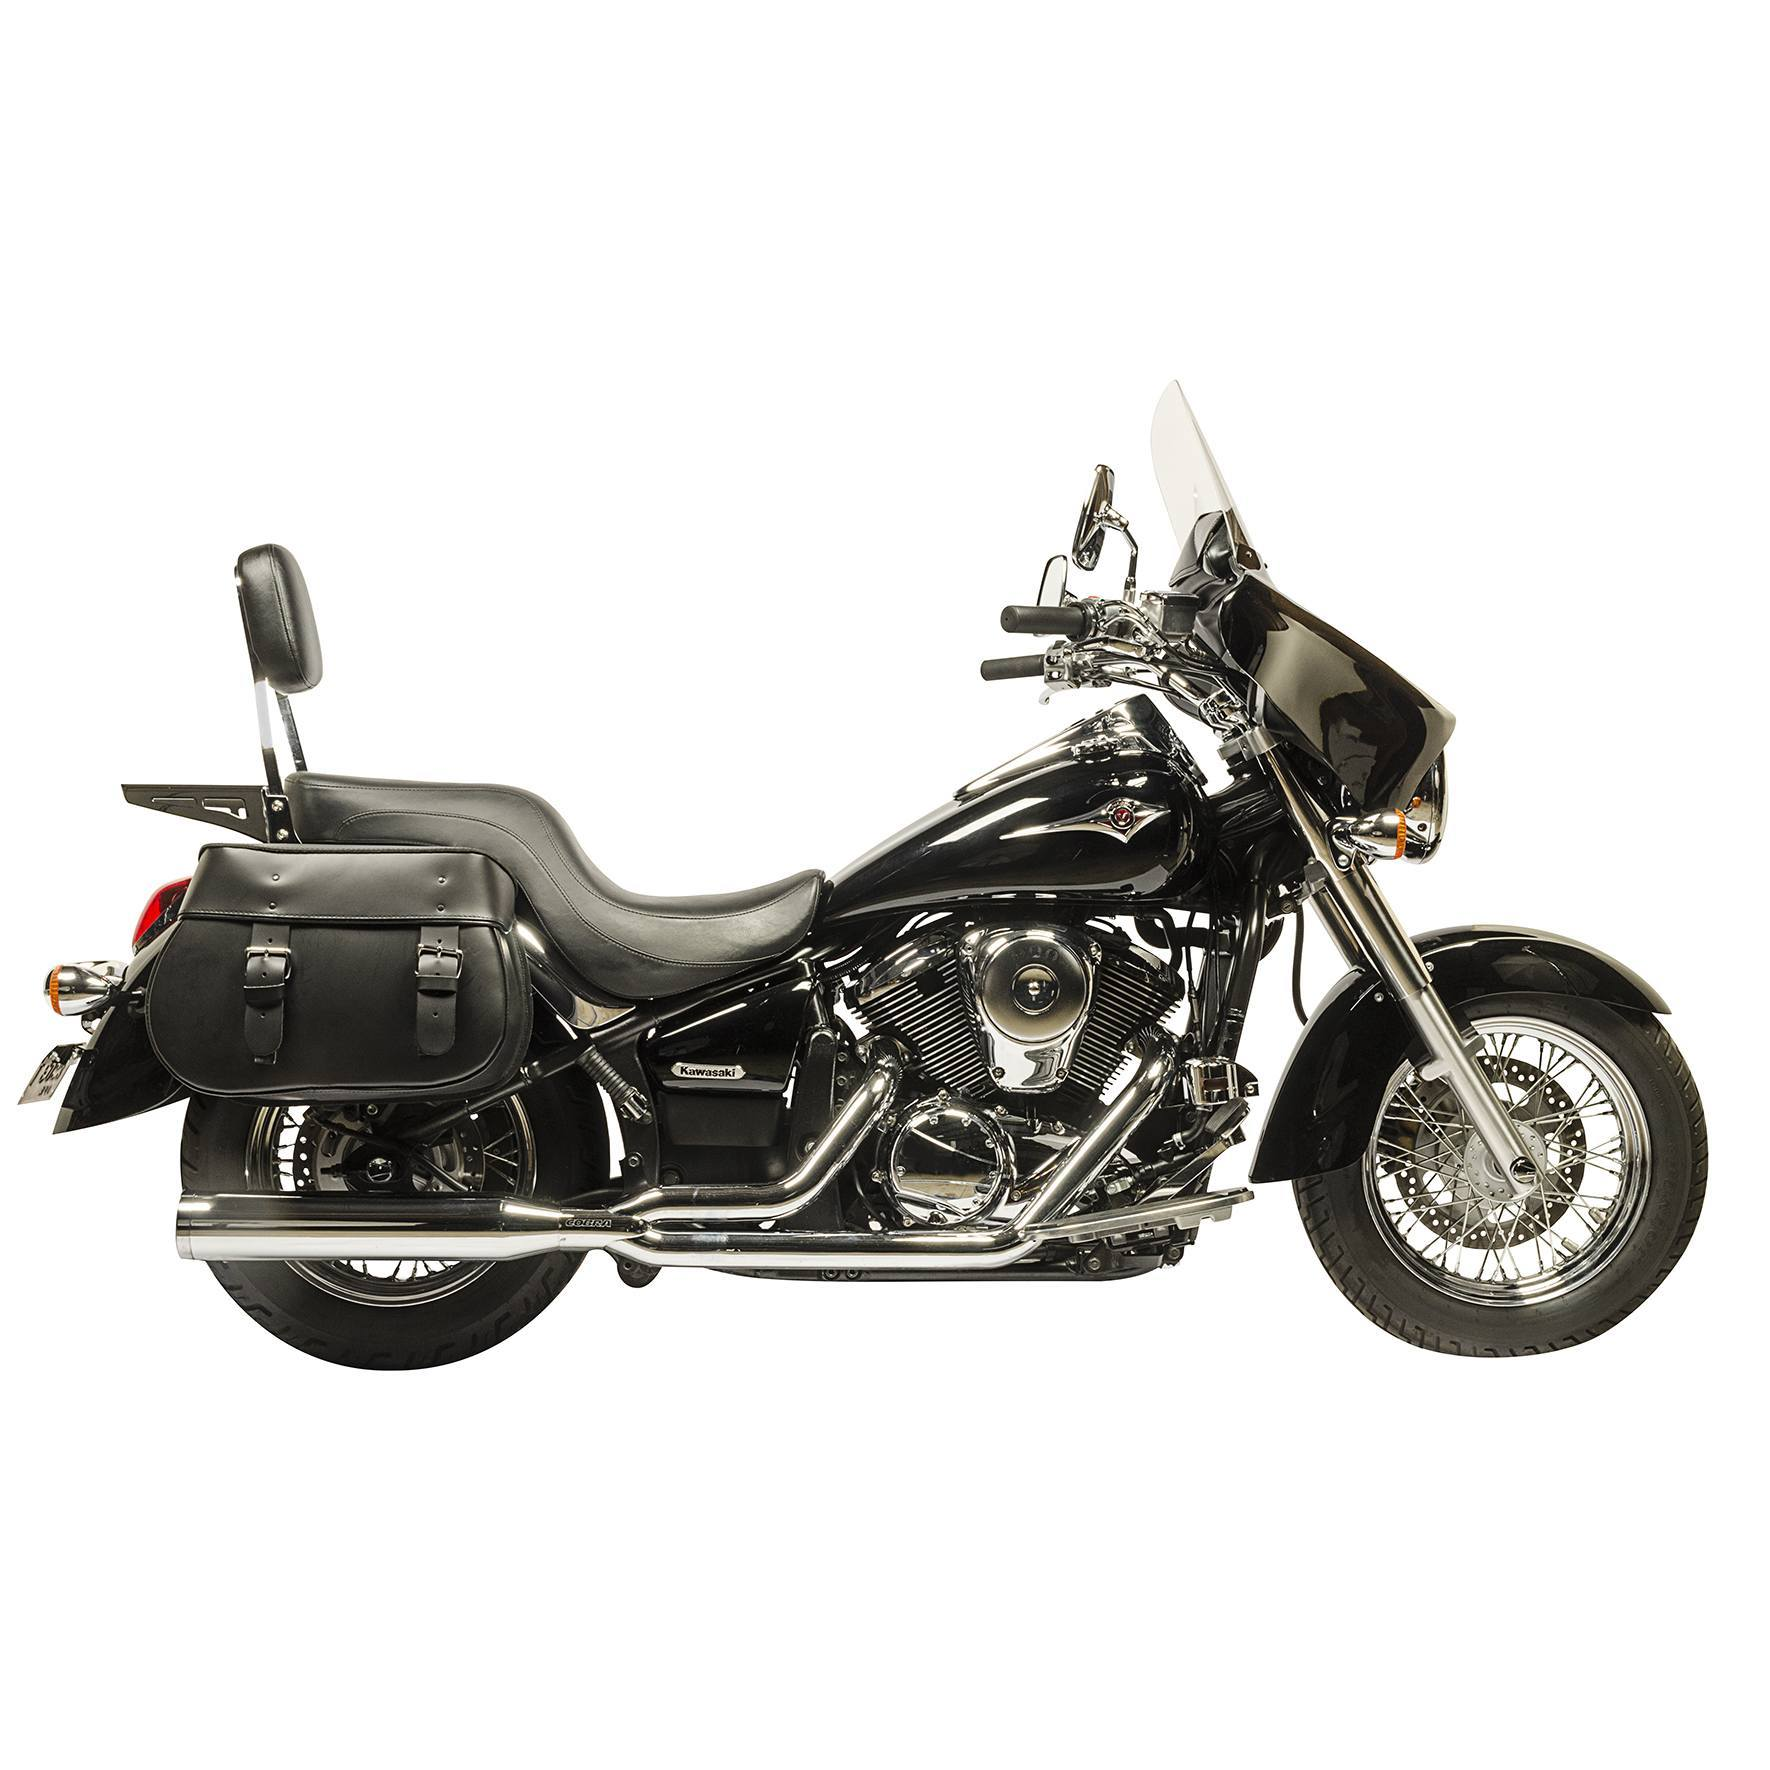 Willie and Max Mighty Legend Leather Saddlebags on a Kawasaki Vulcan 900 Motorcycle